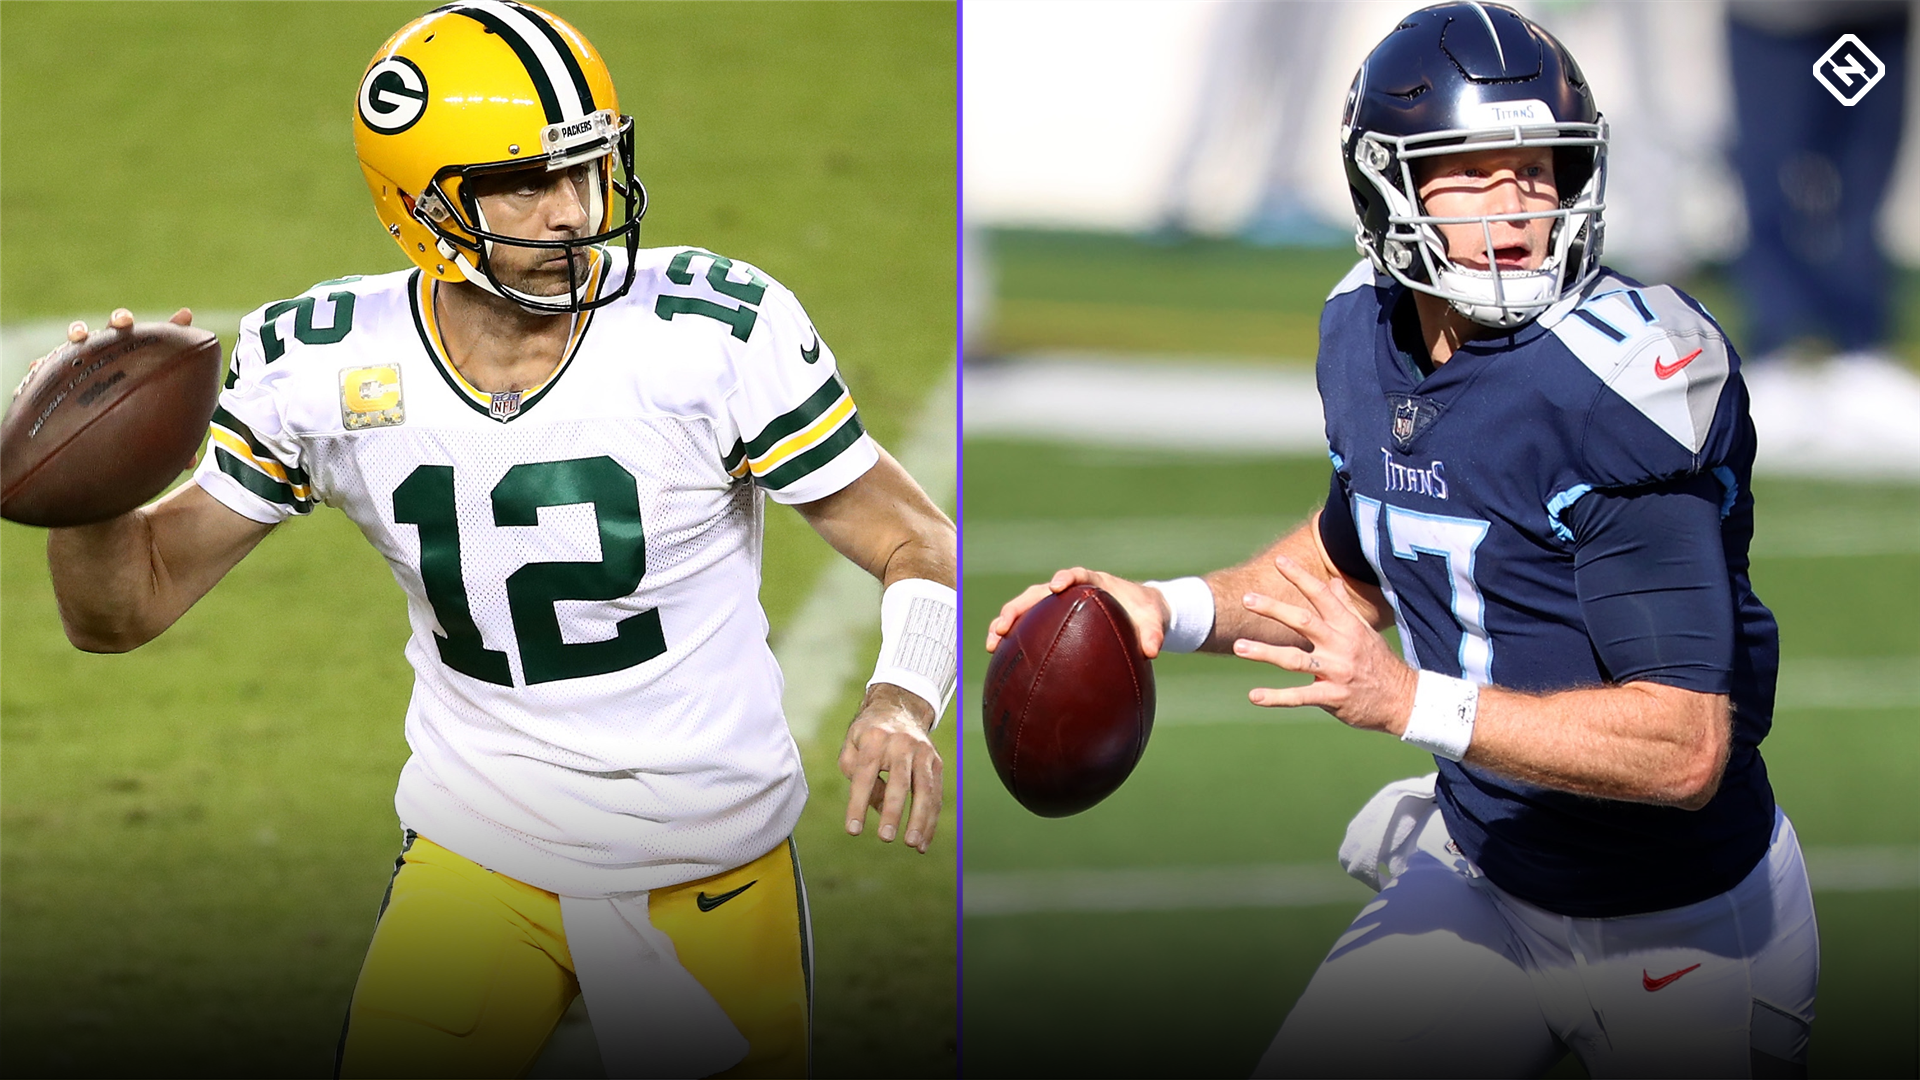 Packers vs. Titans odds, prediction, betting trends for NFL's 'Sunday Night Football' game